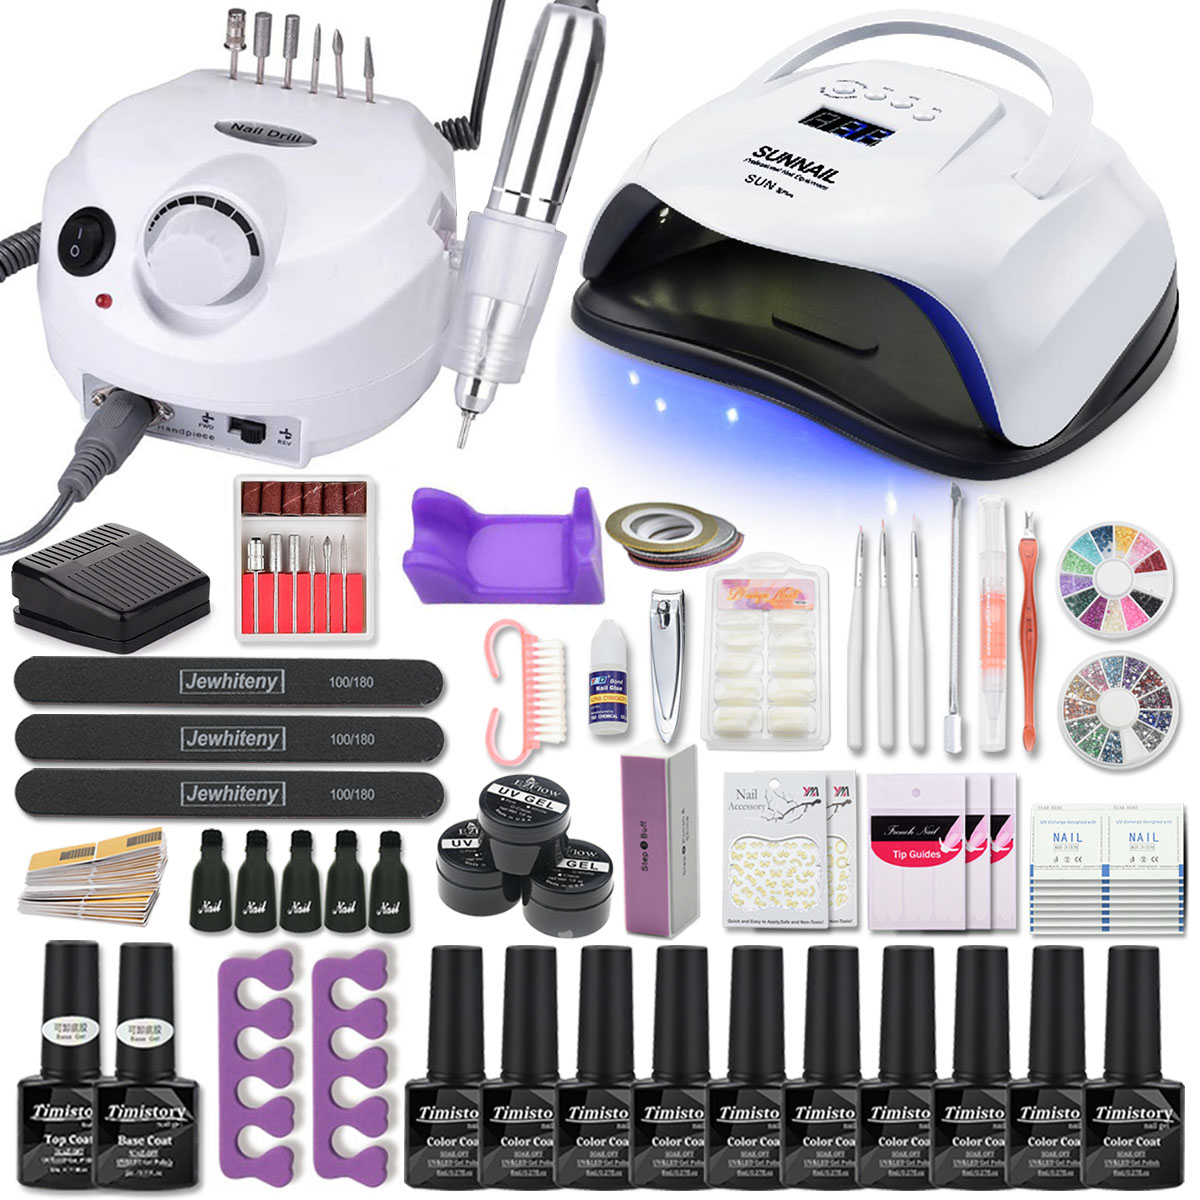 Manicure Set Acrylic Nail Kit With 120/80/54W Nail Lamp 35000RPM Nail Drill Machine Choose Gel Nail Polish All For Manicure